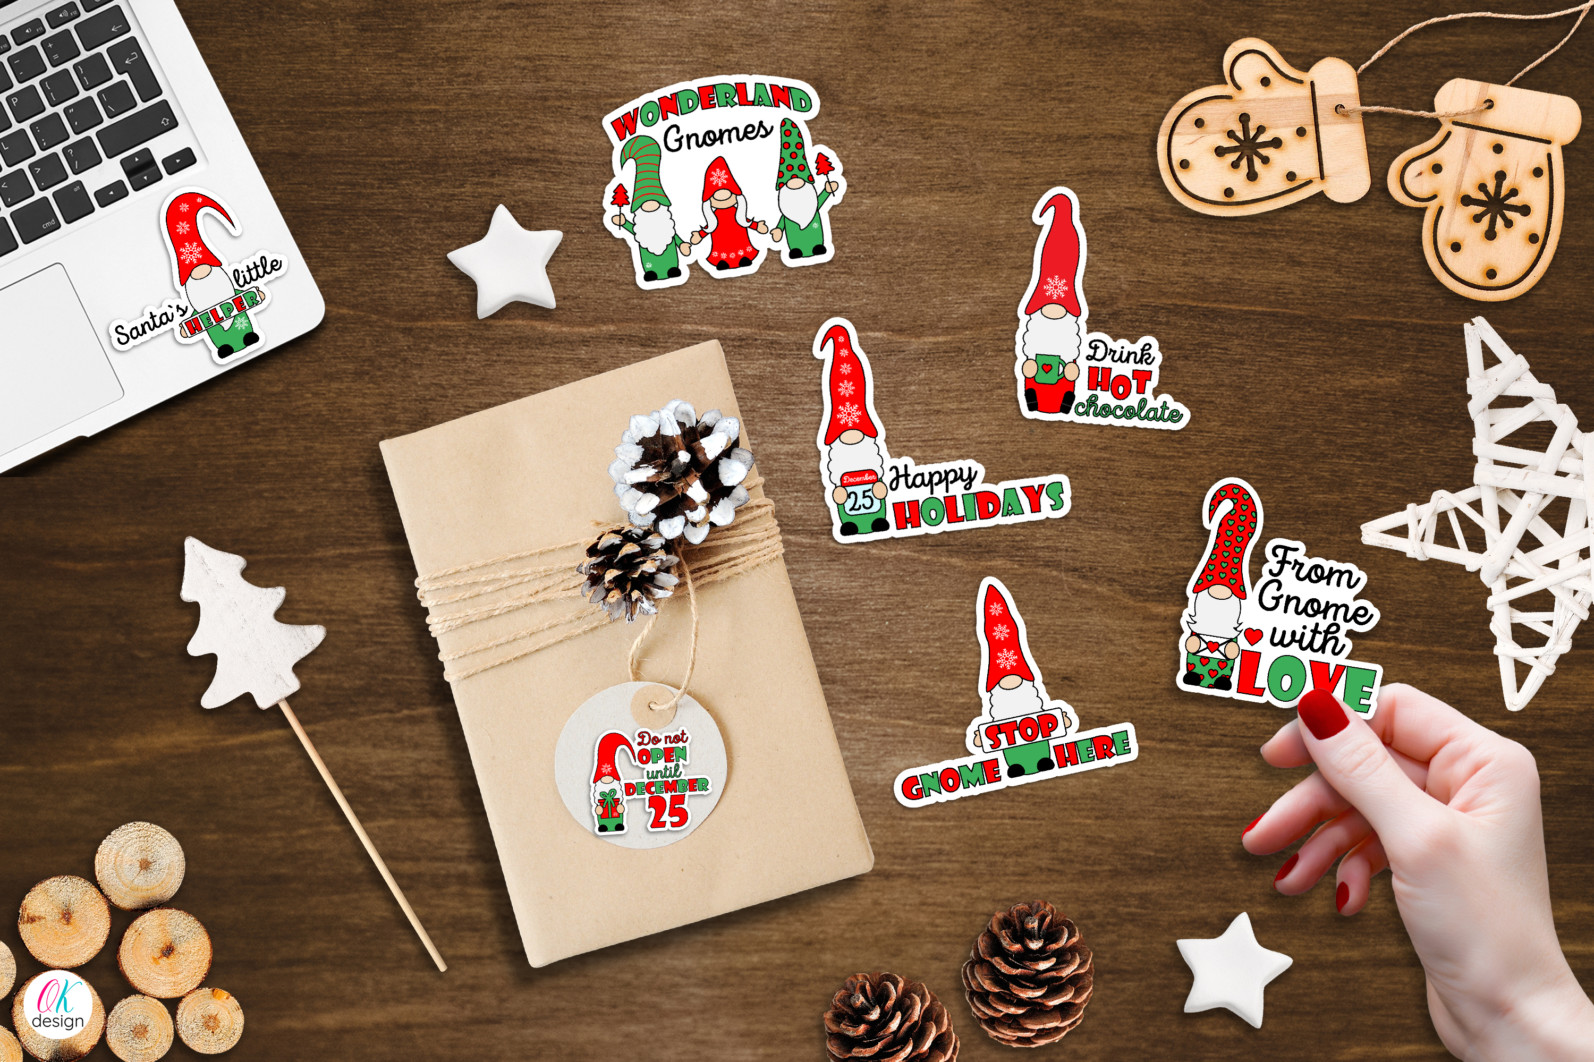 Christmas bundle Vol. 1. Christmas stickers. Christmas SVG bundle. - 21 Gnome Christmas bundle Christmas gnome sublimation Christmas stickers gnome Christmas stickers Christmas gnome stickers Gnome stickers print and cut stickers scaled -